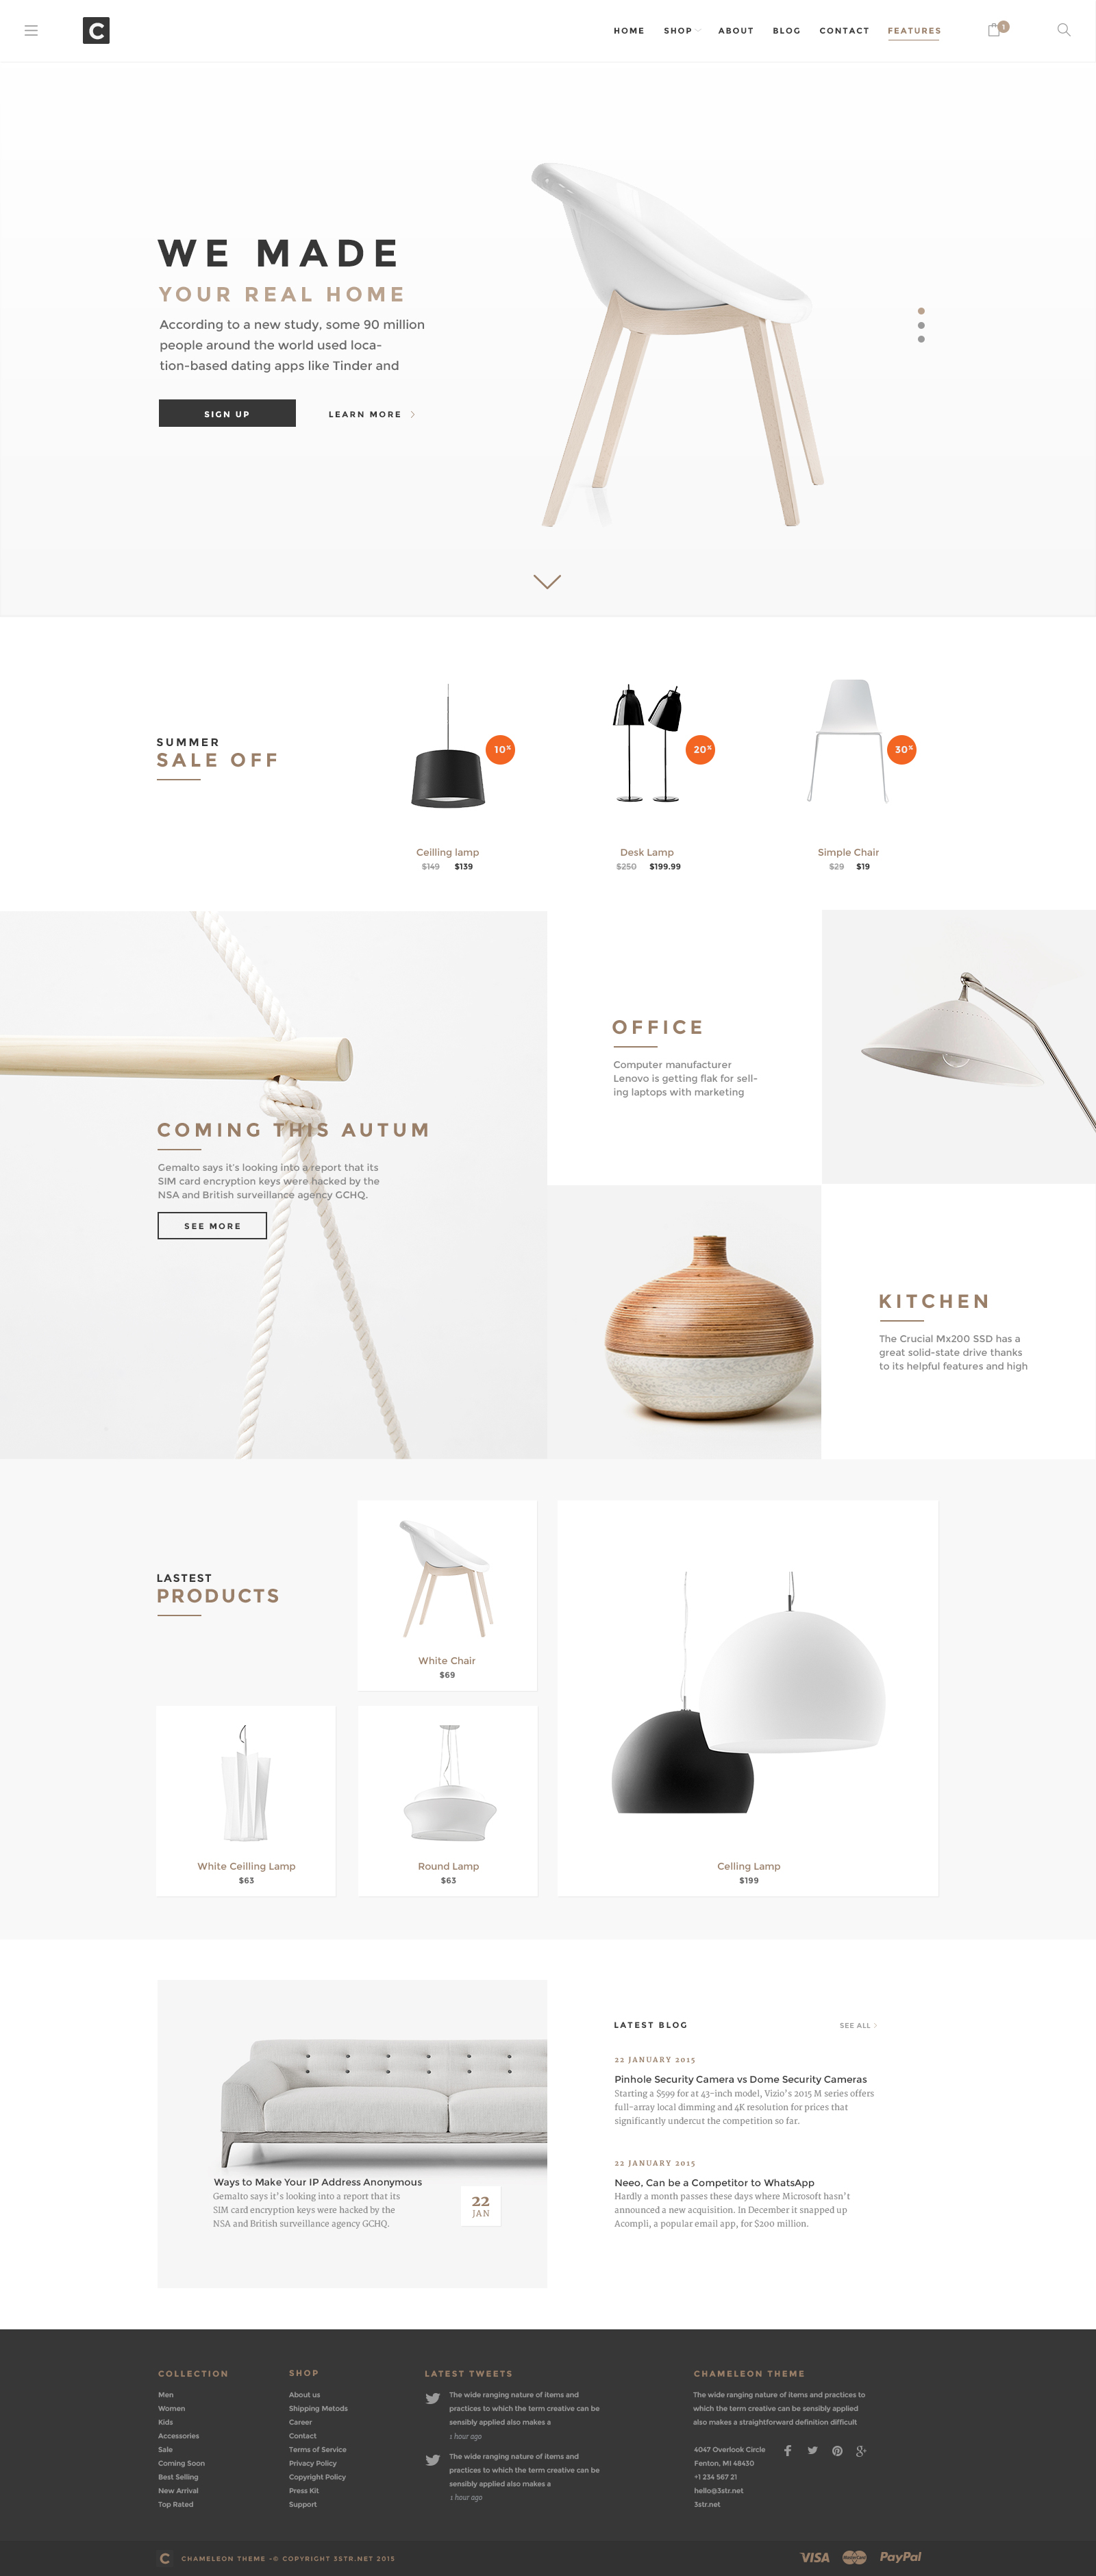 Gold and Whitespace in web design